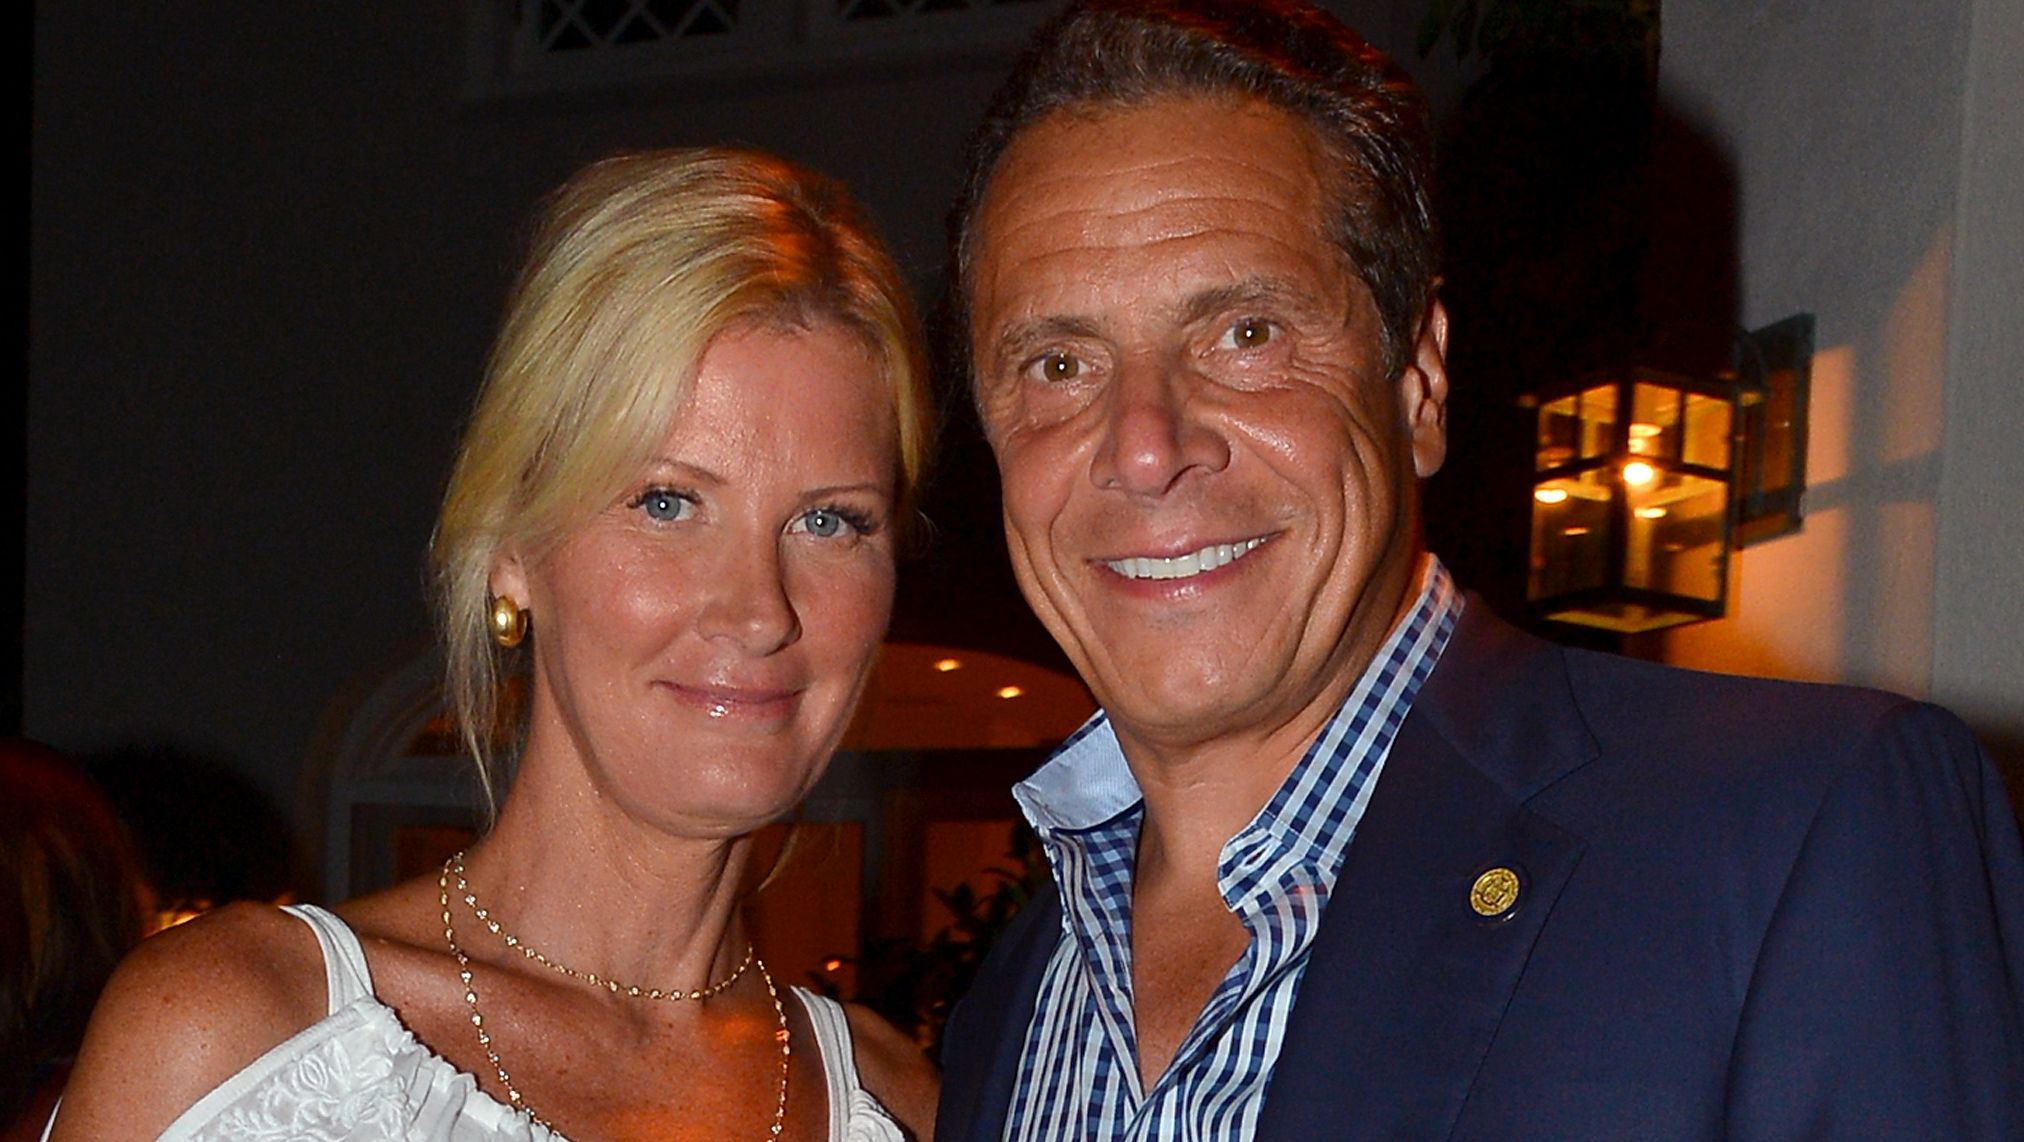 Andrew Cuomo S Ex Girlfriend Sandra Lee Sells Georgia Home Amid Reconciliation Talk